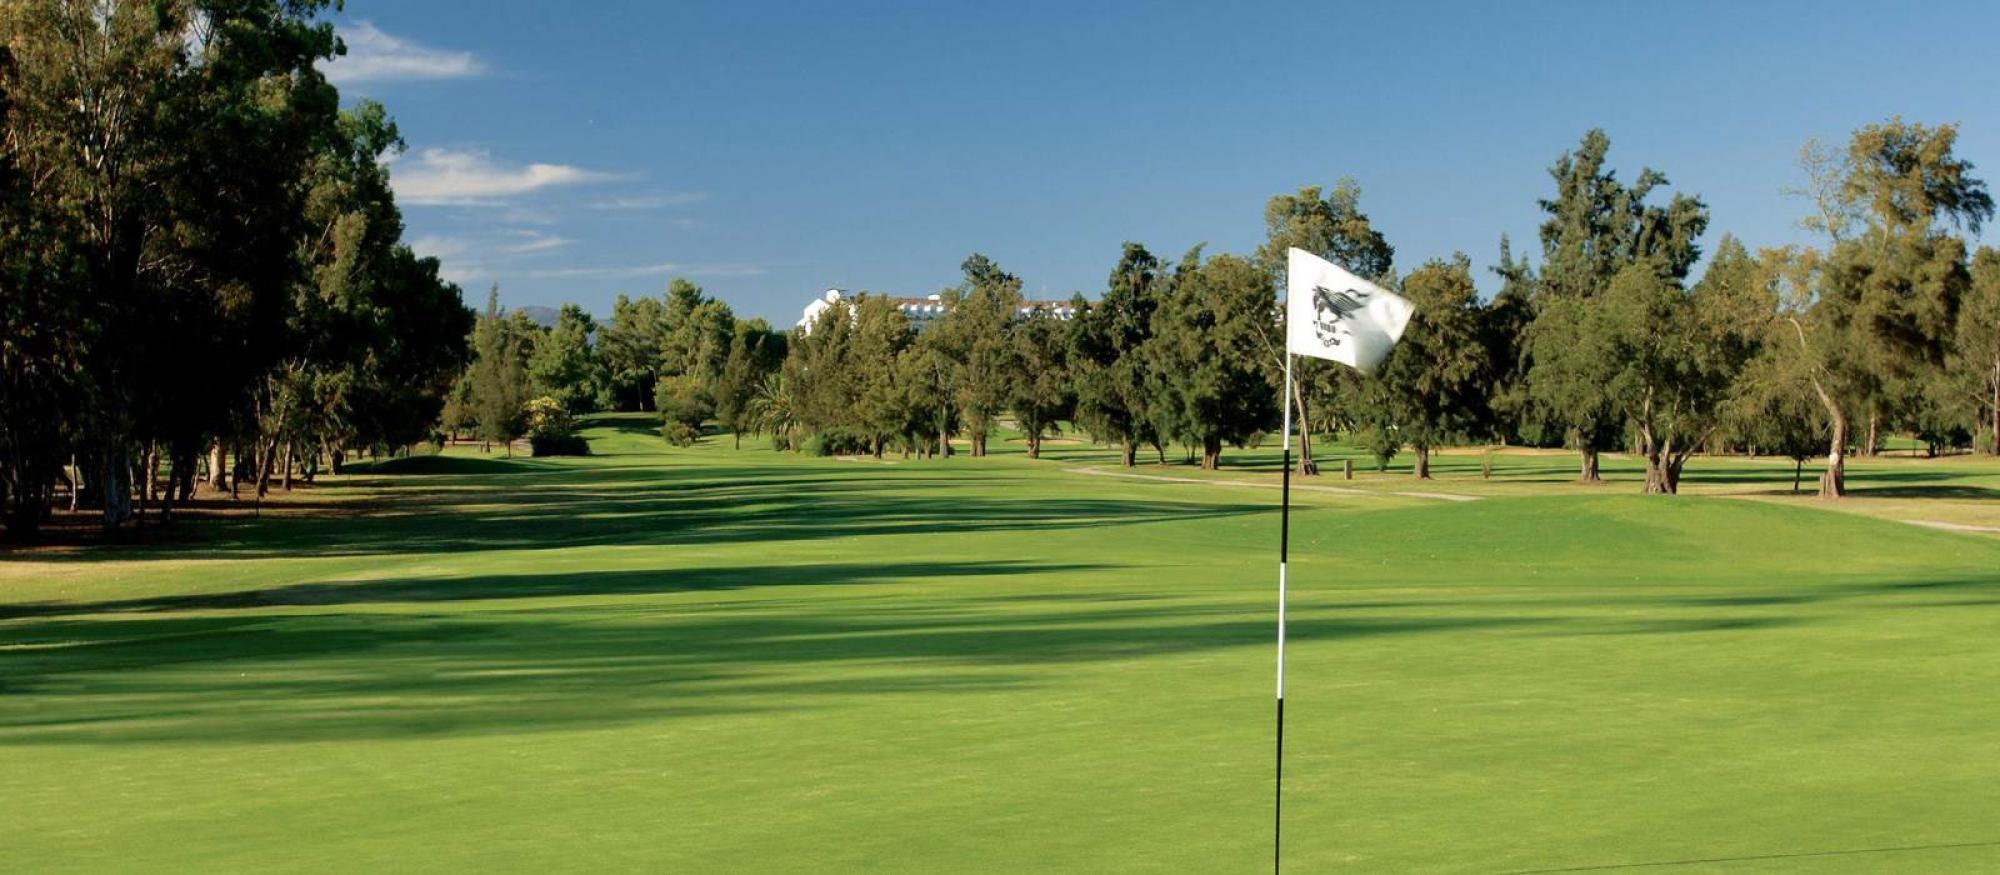 The Penina Resort Course's scenic golf course in sensational Algarve.